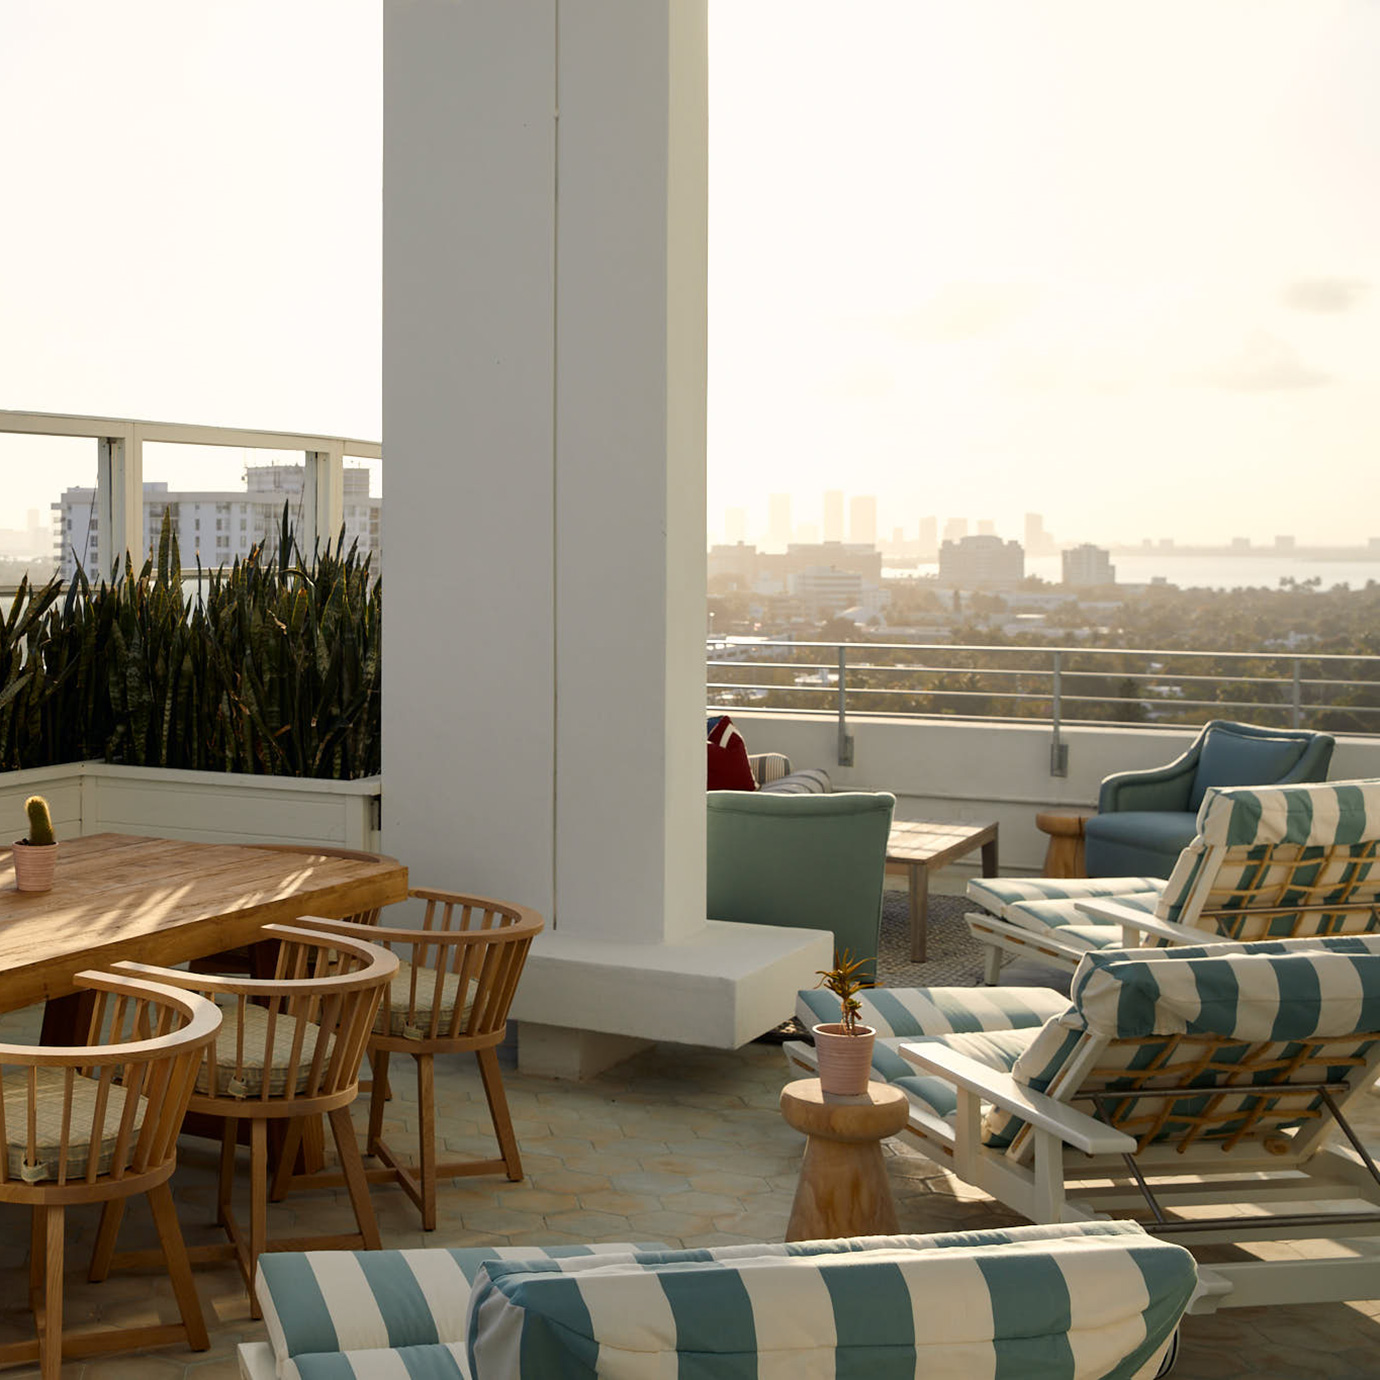 A large roof terrace with dining table and sun loungers.